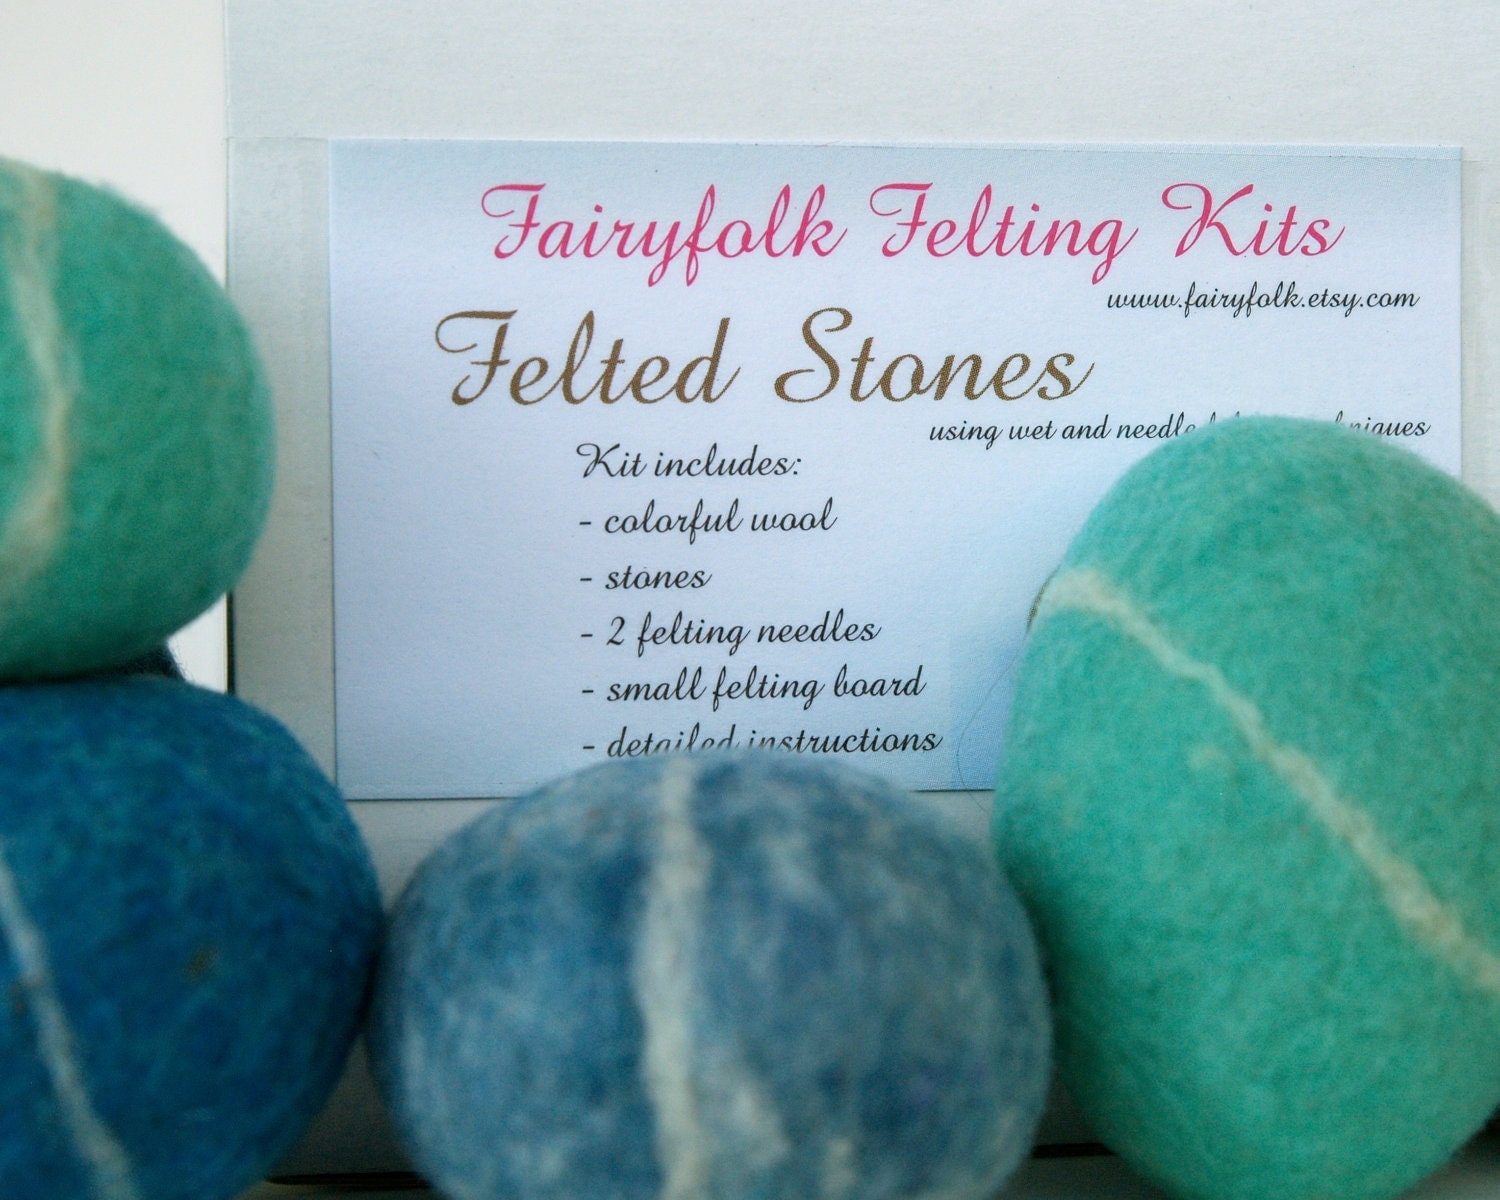 Felted Pebble Kit, Wool Felting Rocks Stone DIY Tutorial learn to New Hobby Crafting Craft Make your own Handmade Wet Beach Turquoise Blue